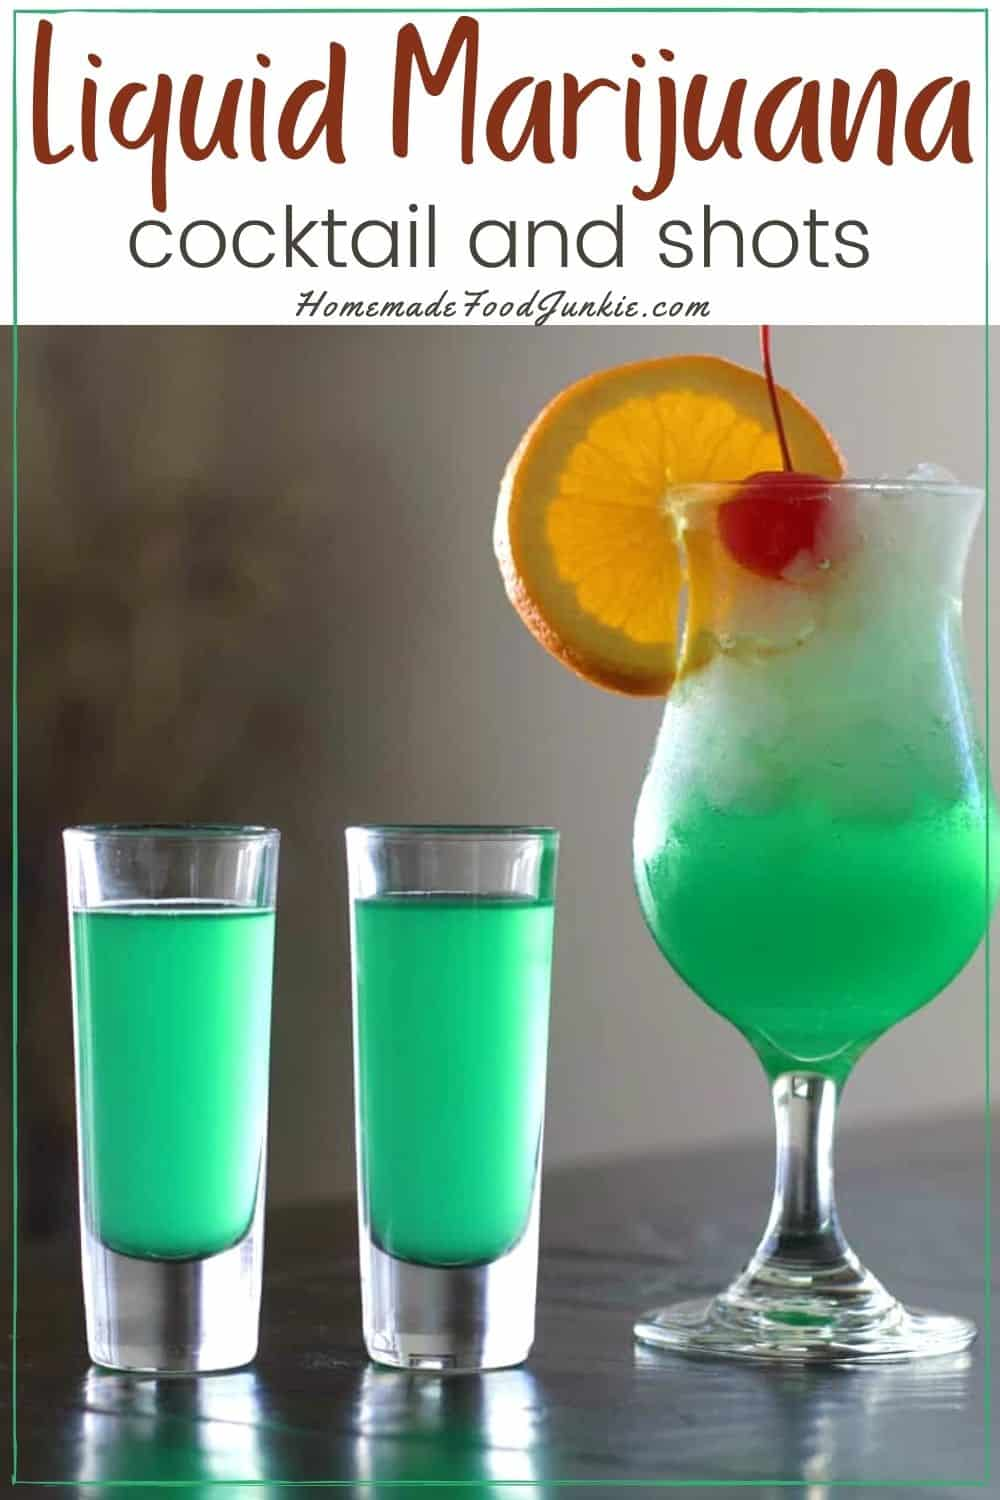 Liquid marijuana cocktail and shots-pin image